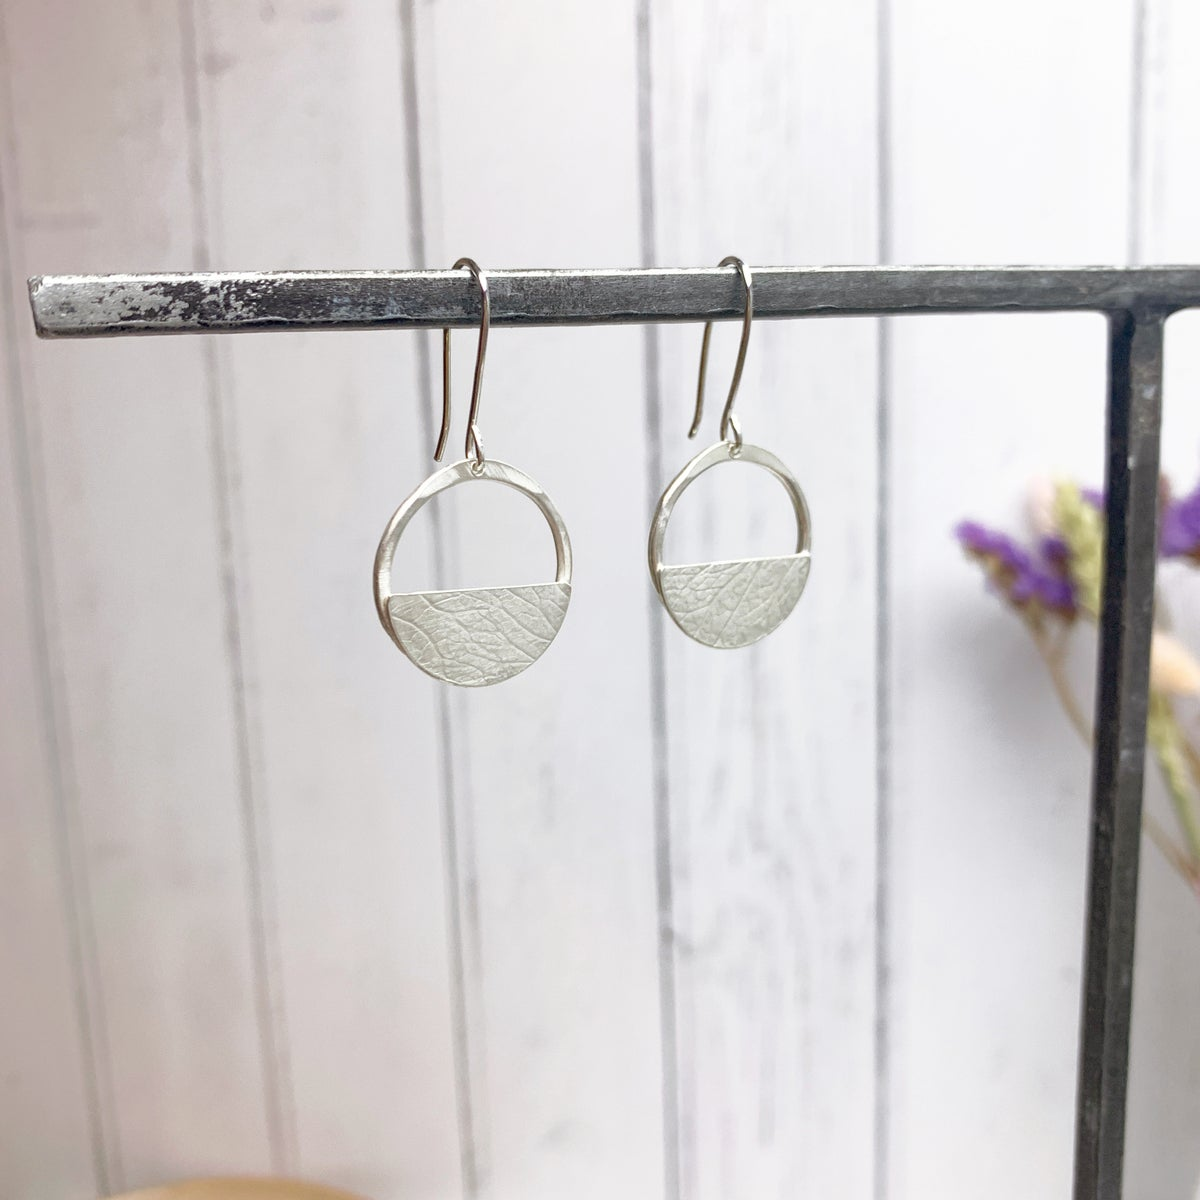 Image of Dangly circle earrings, recycled sterling silver